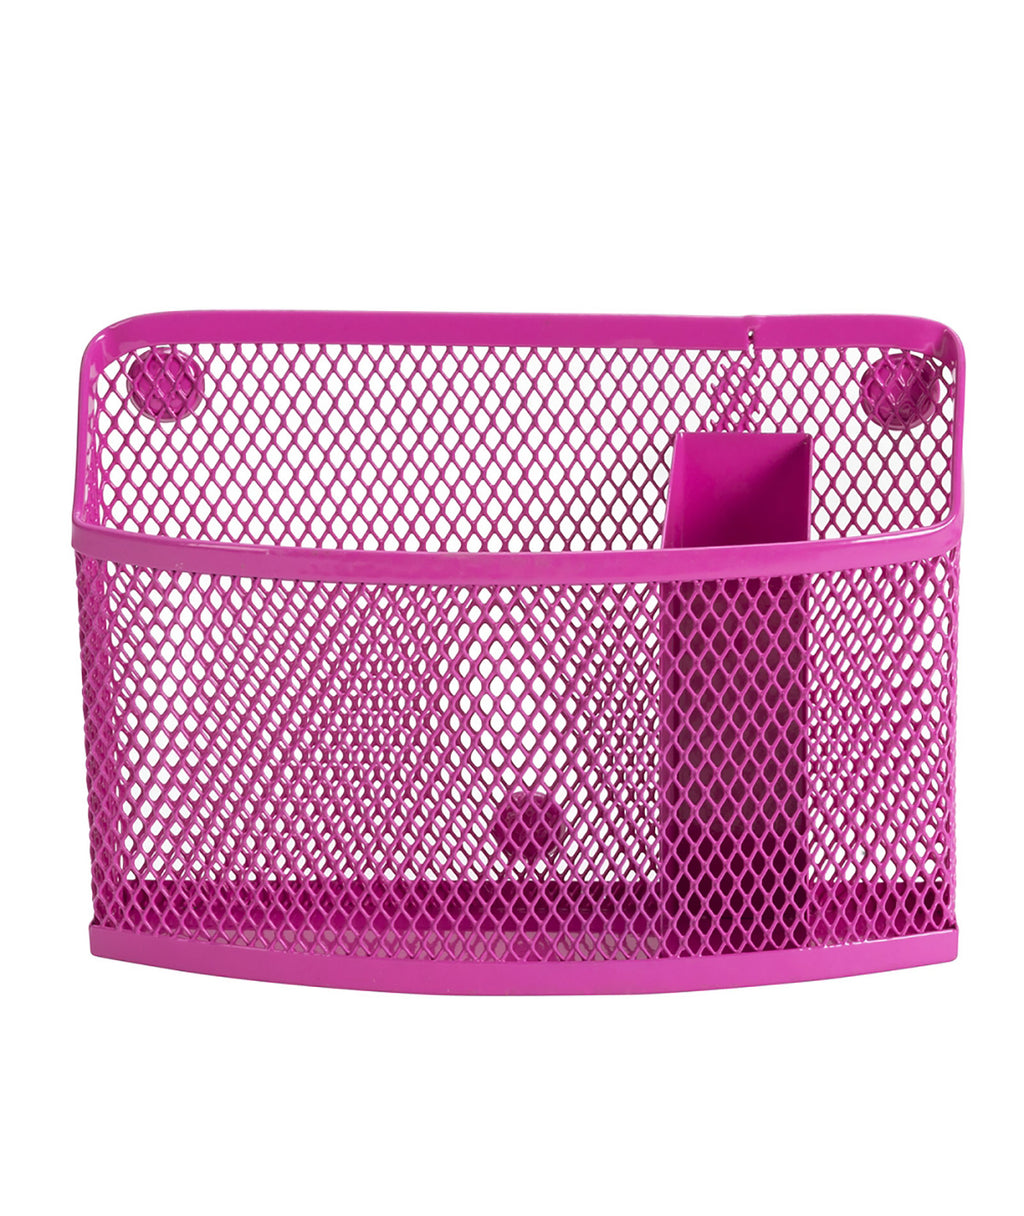 Three Cheer for Girls Fuchsia Storage Bin